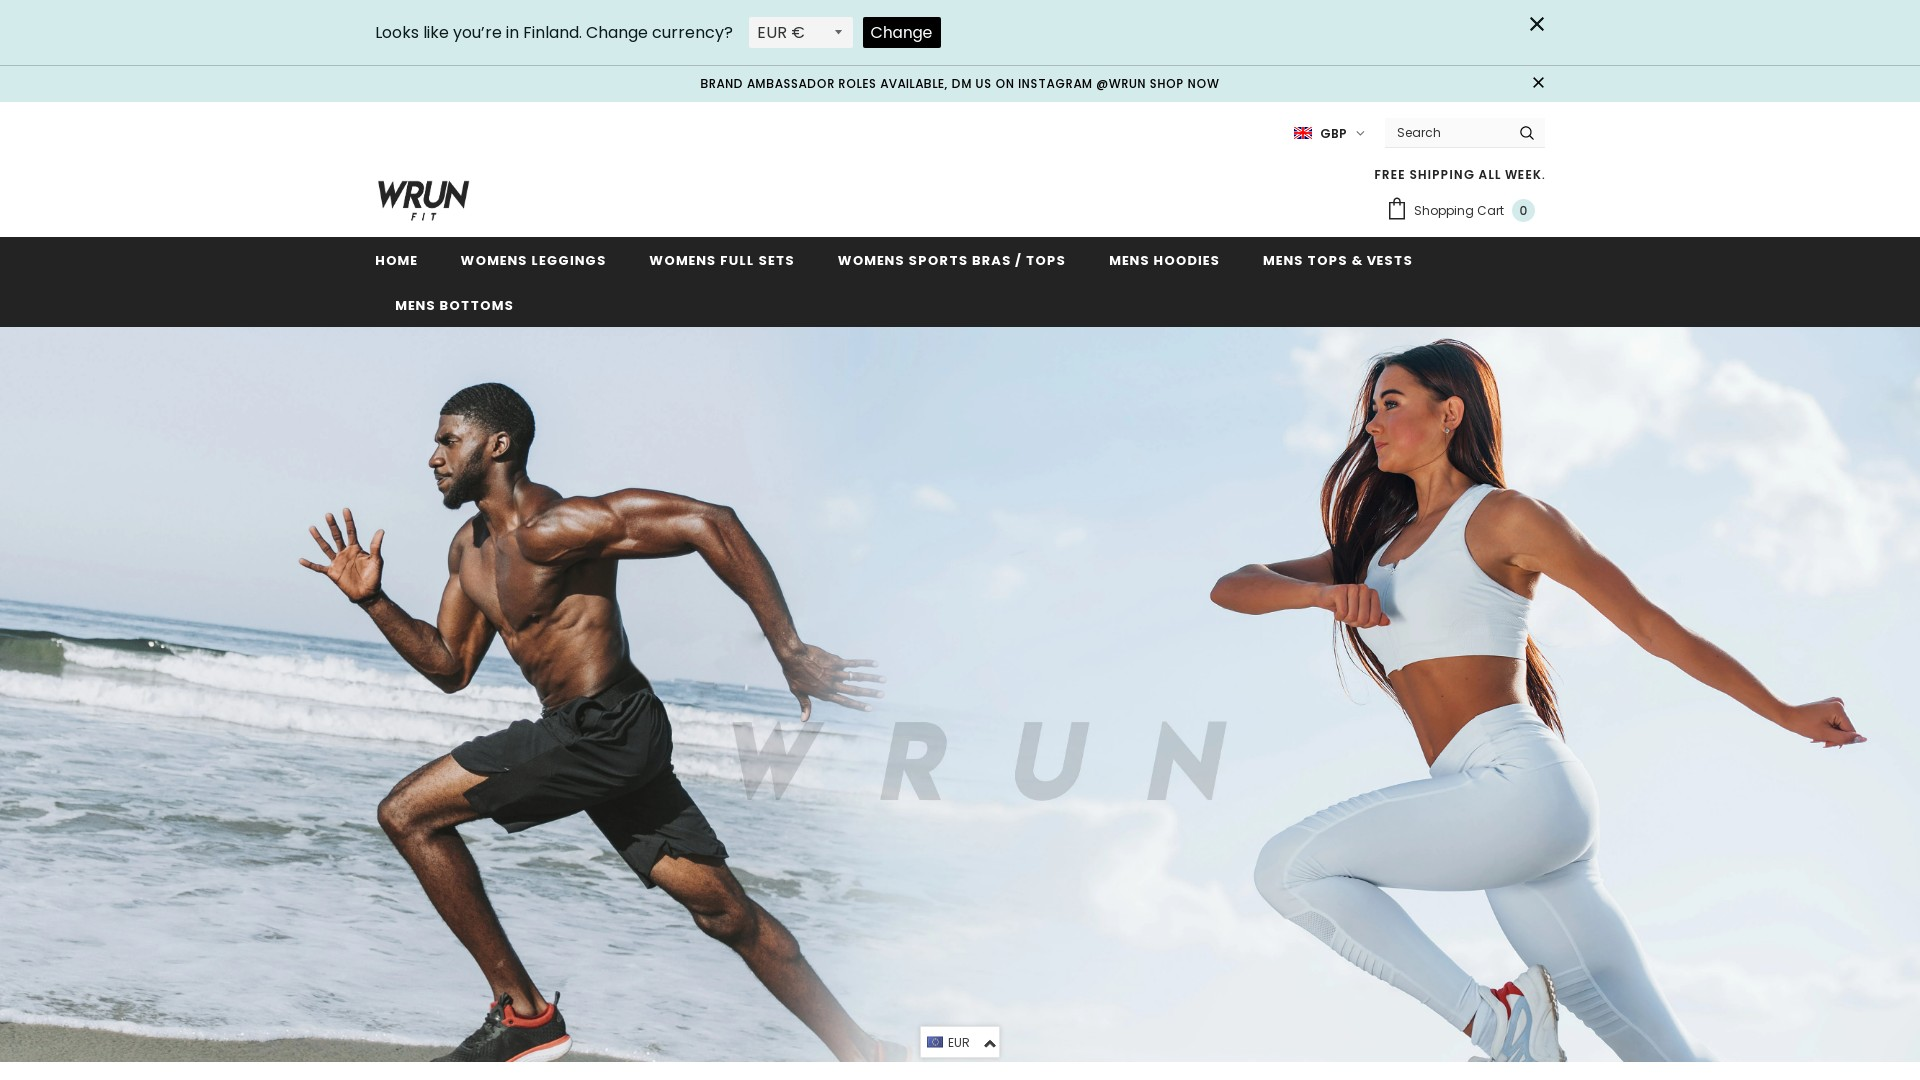 Is Wrun Fit a Scam? Review of the Online Store